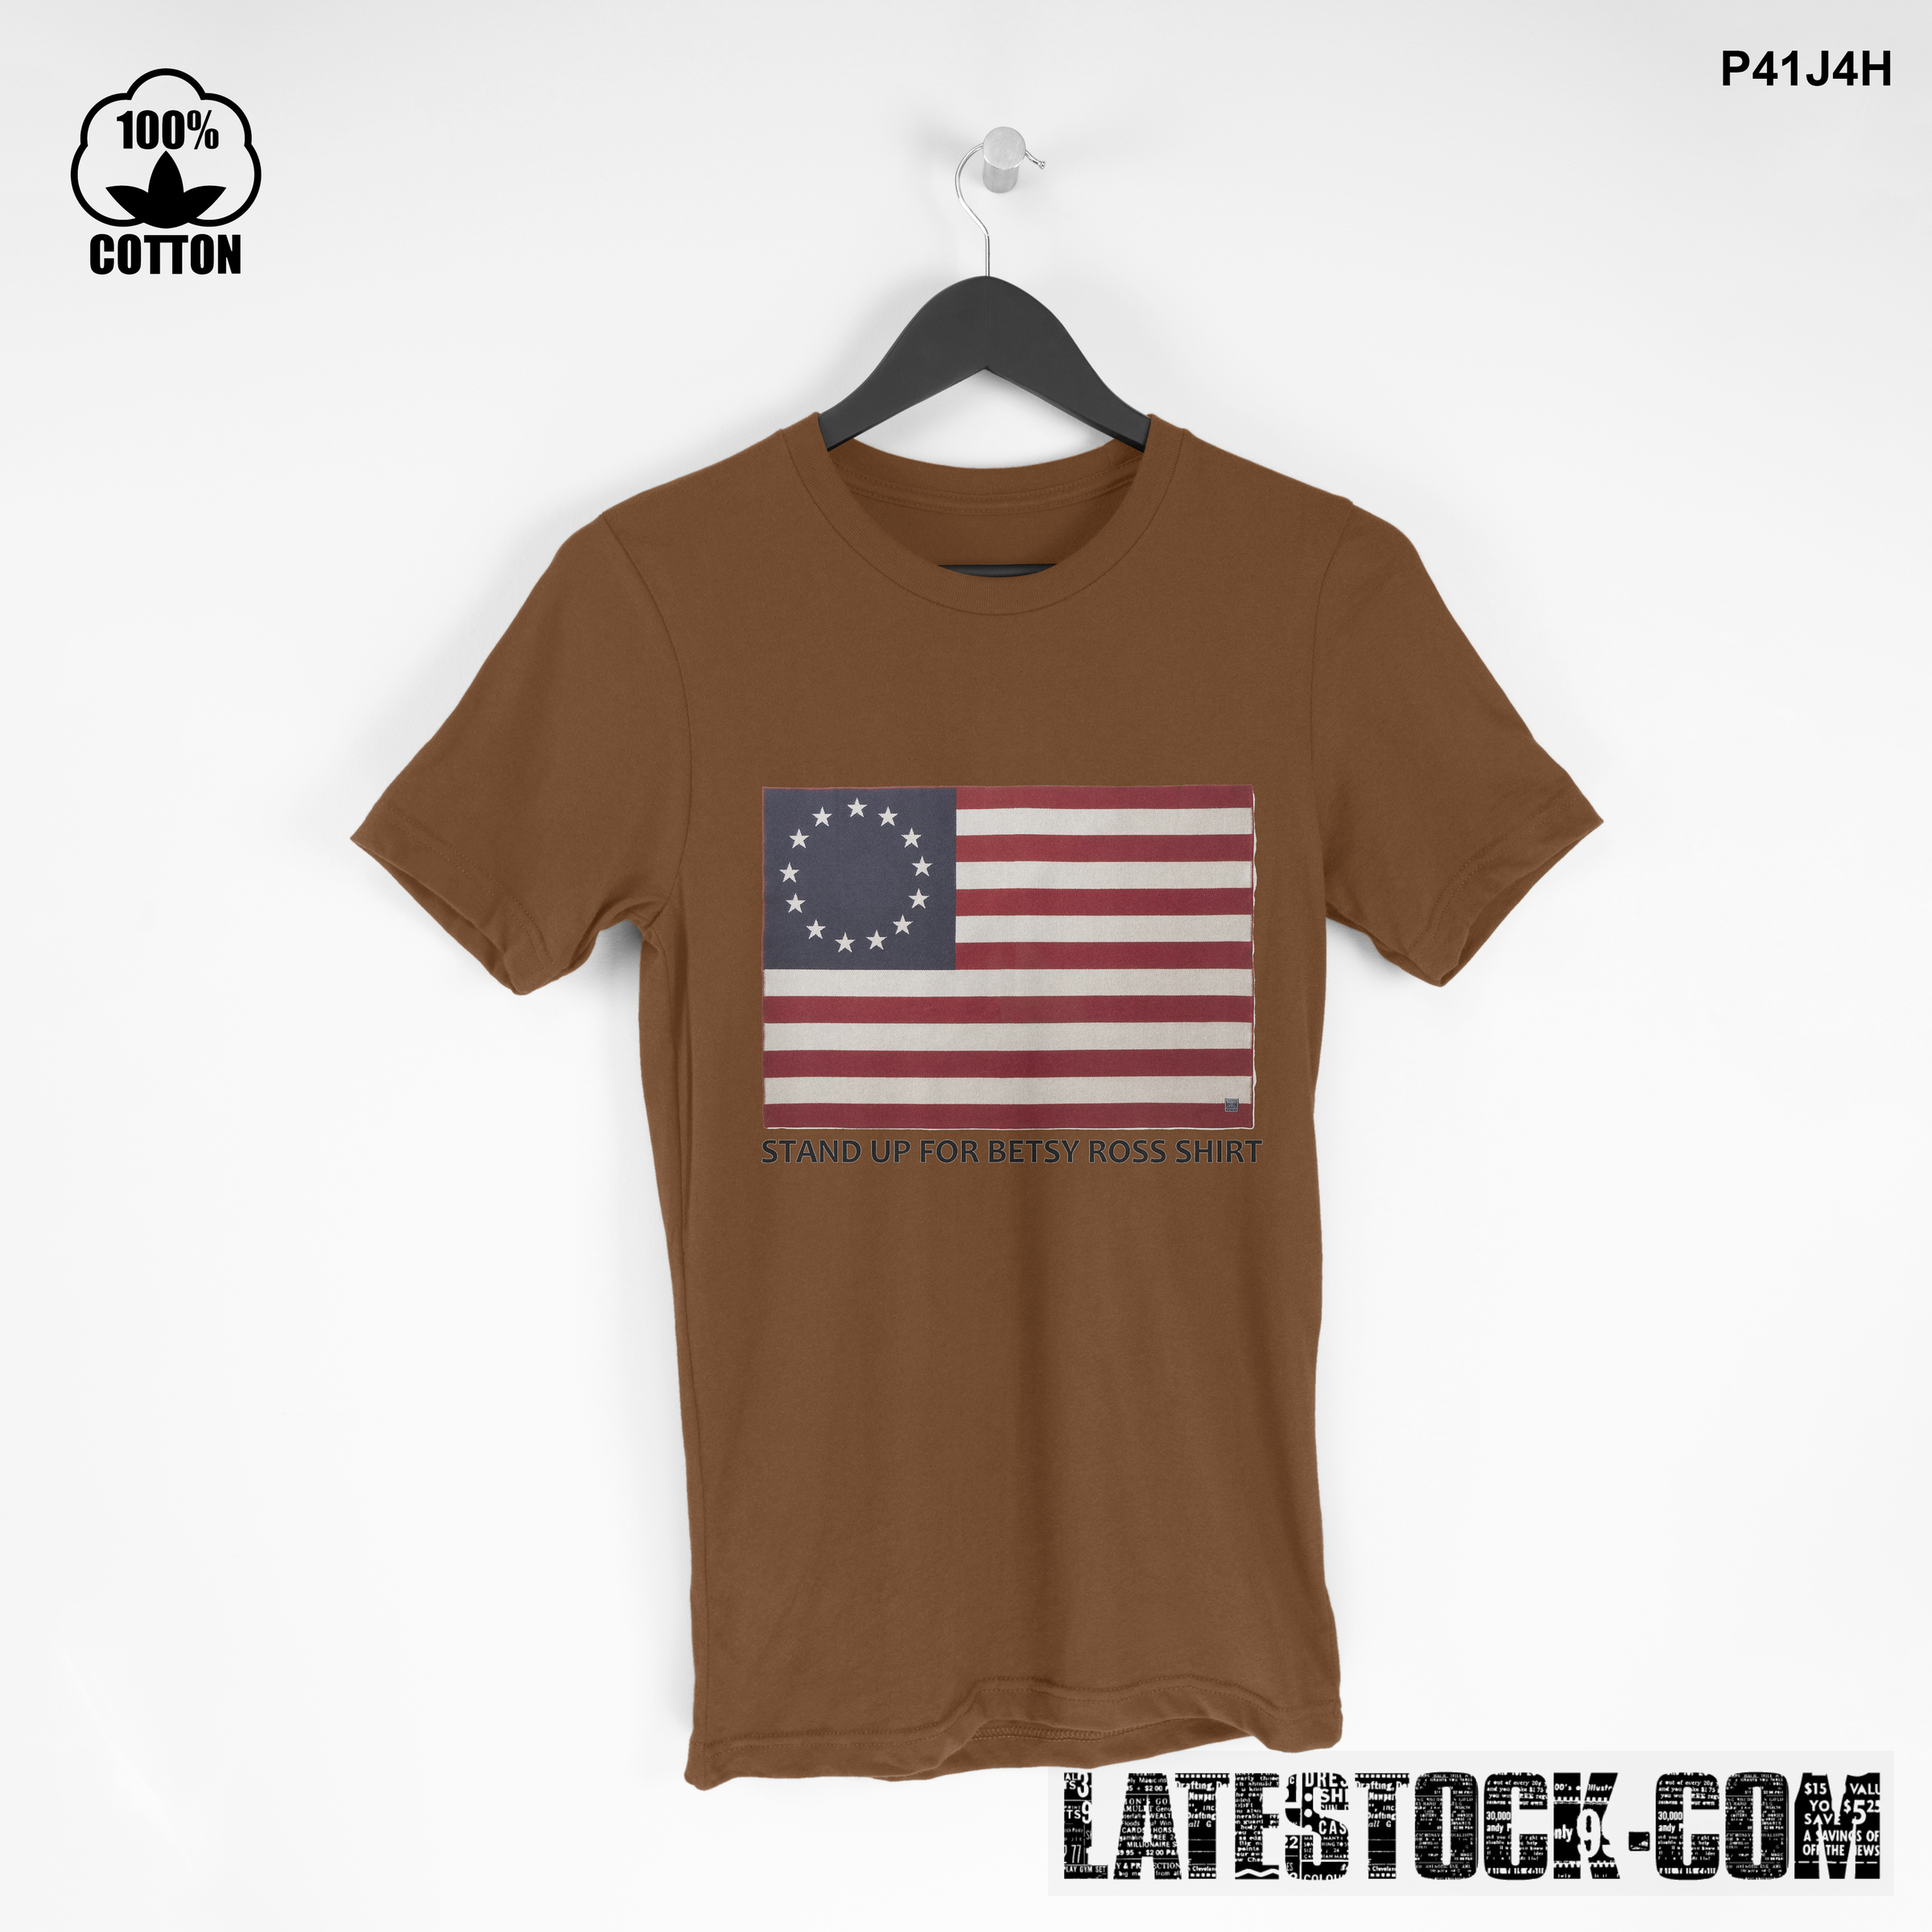 1LIMITED EDITION!! Stand Up for Betsy Ross T SHIRT Saddle Brown.jpg